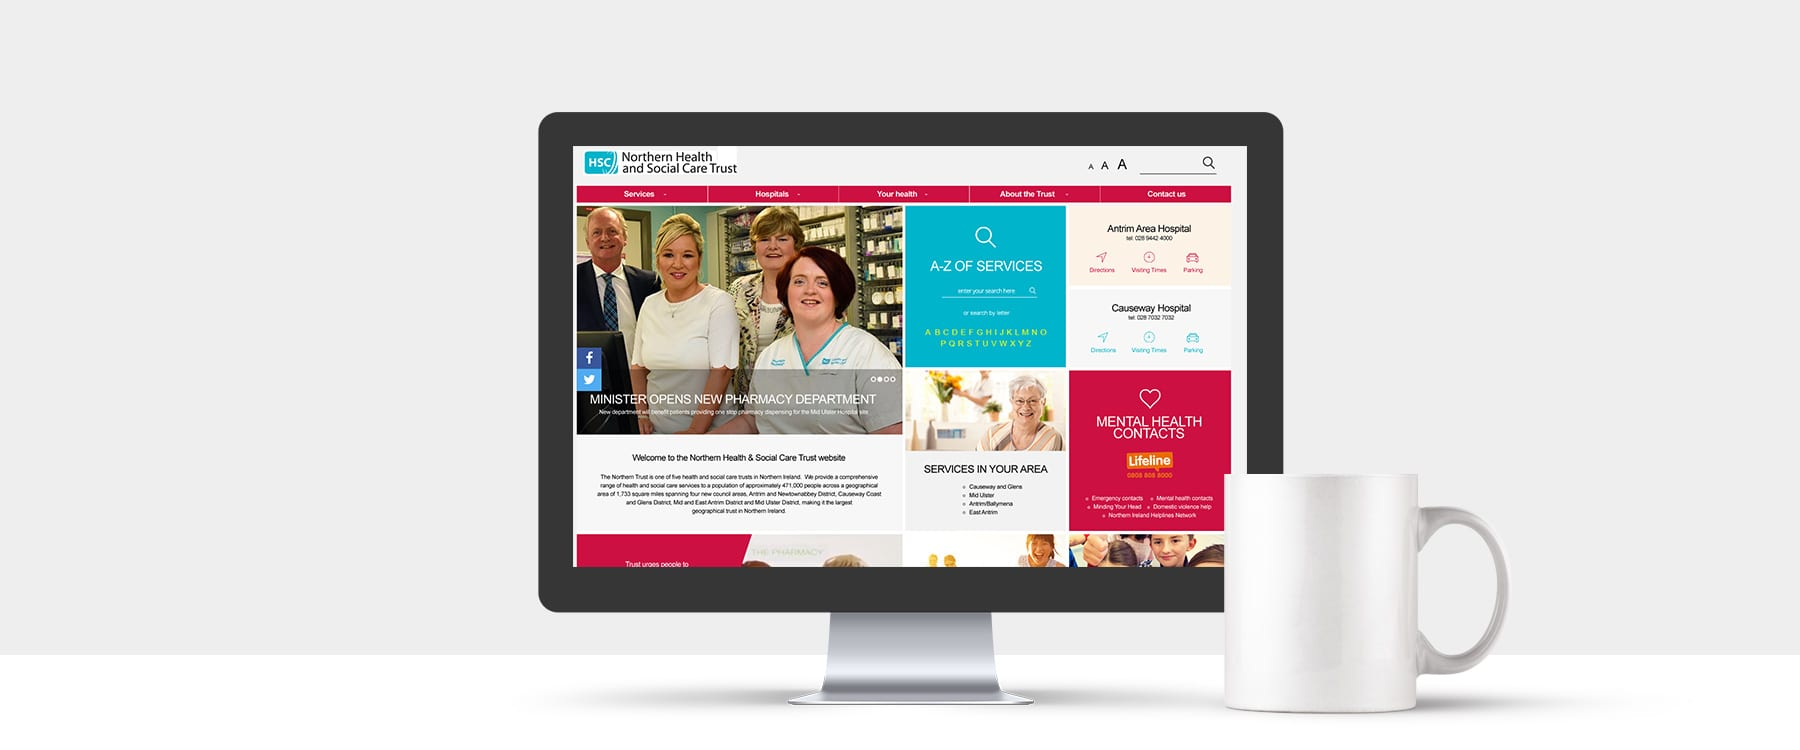 Northern Health & Social Care Trust Image Second